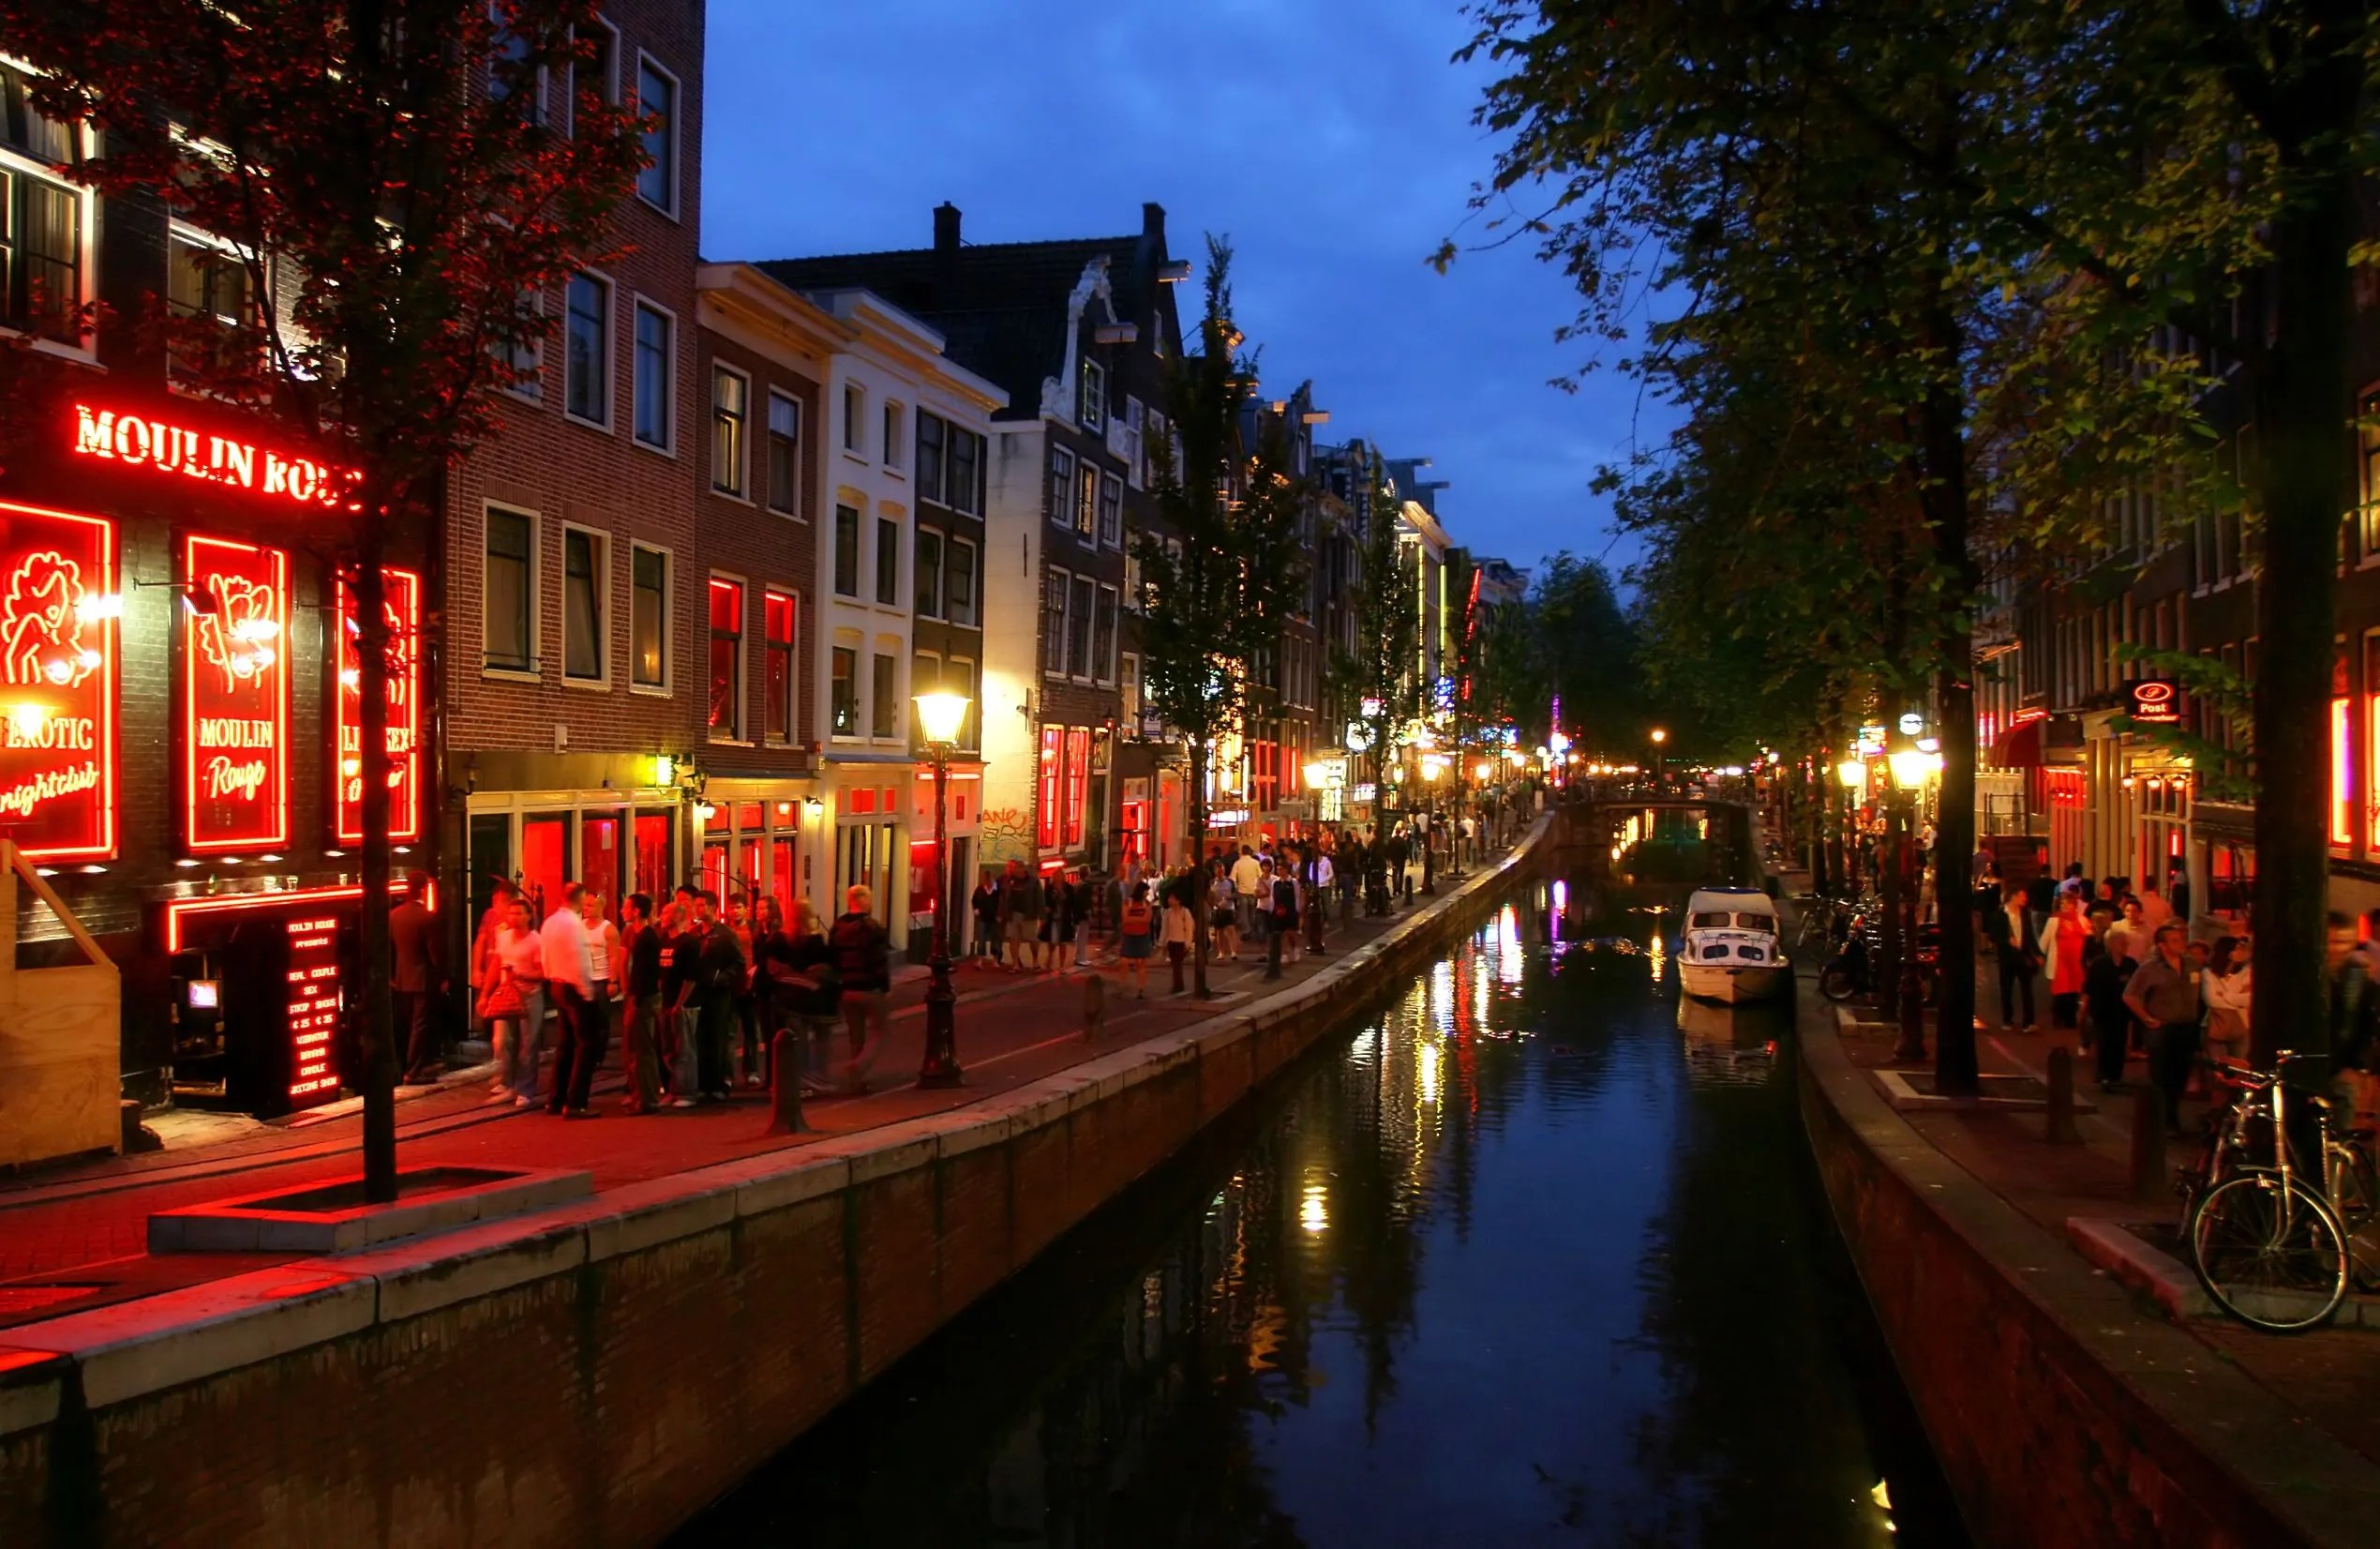 http://www.layoverguide.com/wp-content/uploads/2011/12/Red-Light-District-at-evening-in-Amsterdam-Holland.jpg